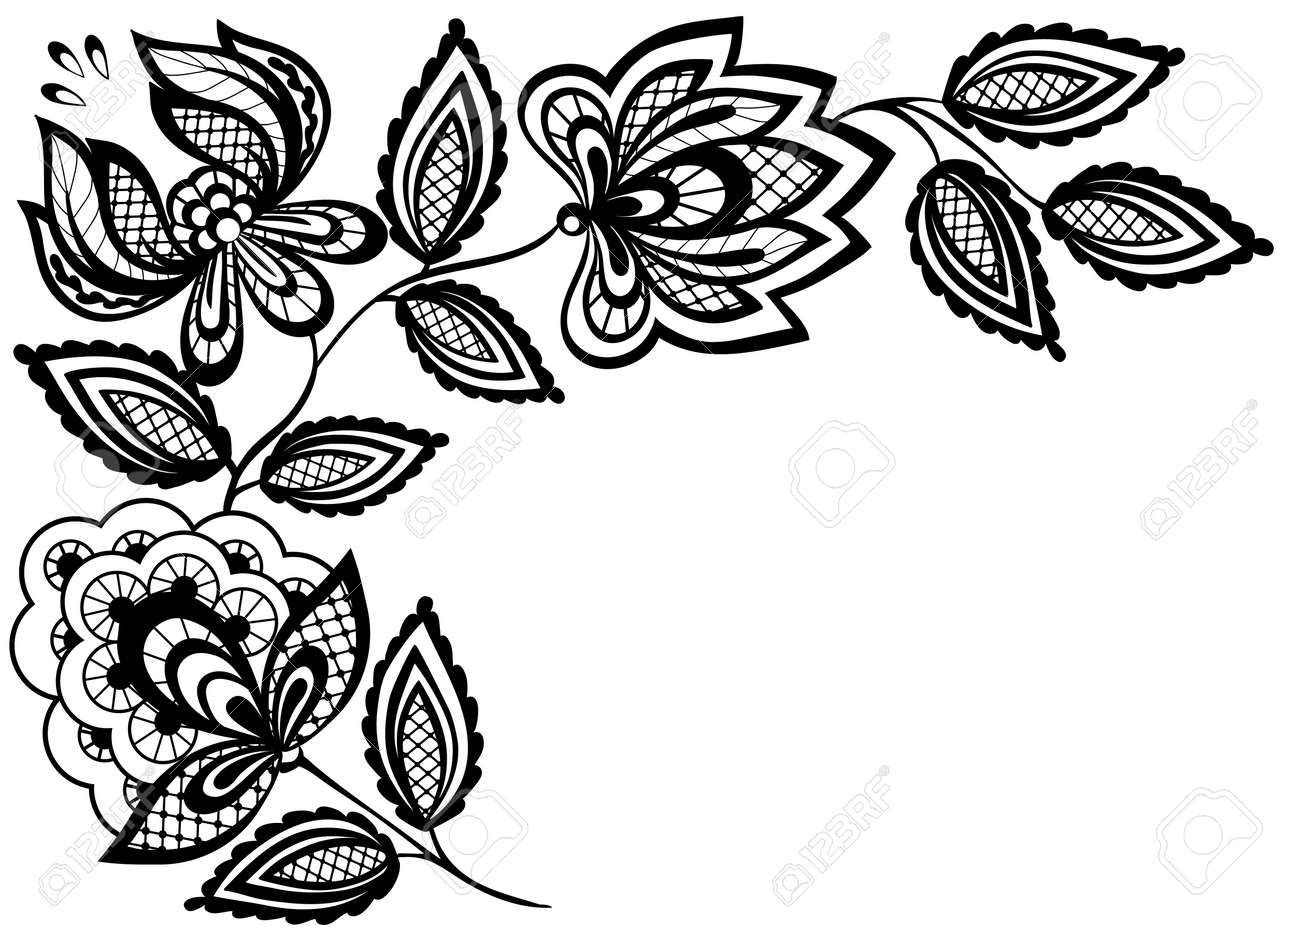 Black and white lace flowers and leaves isolated on white. Many similarities to the author's profile - 18120352